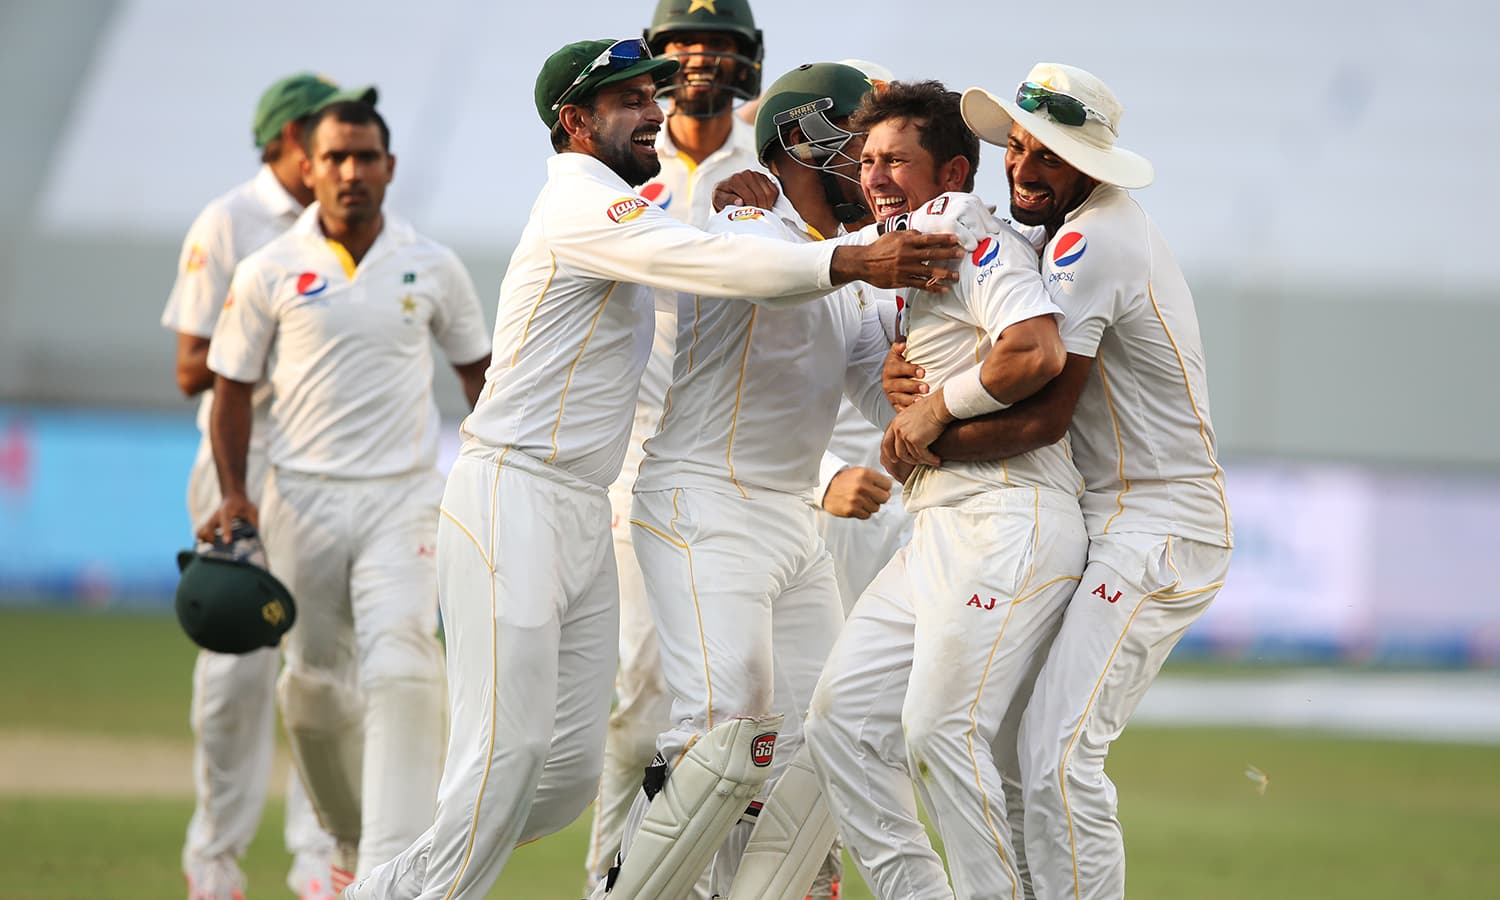 Pakistan's players celebrate with their team-mate Yasir Shah. — AP